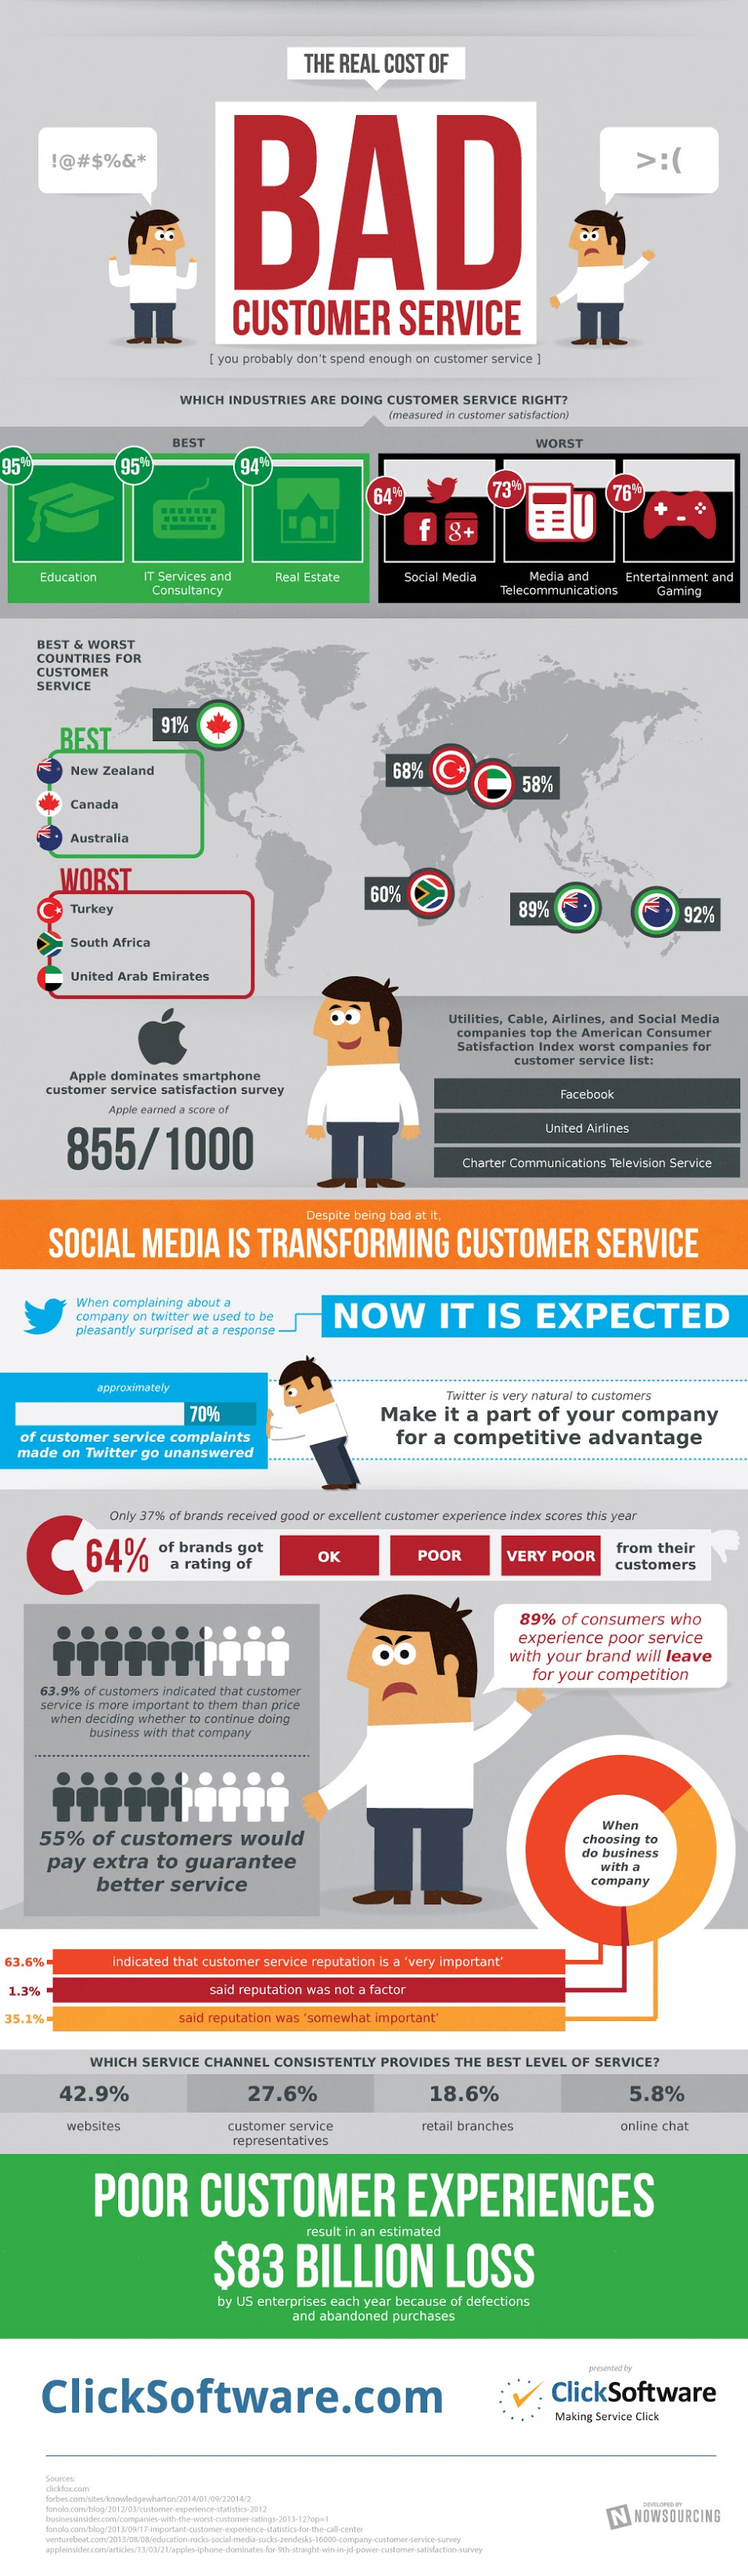 The Real Cost of Bad Customer Service - infographic